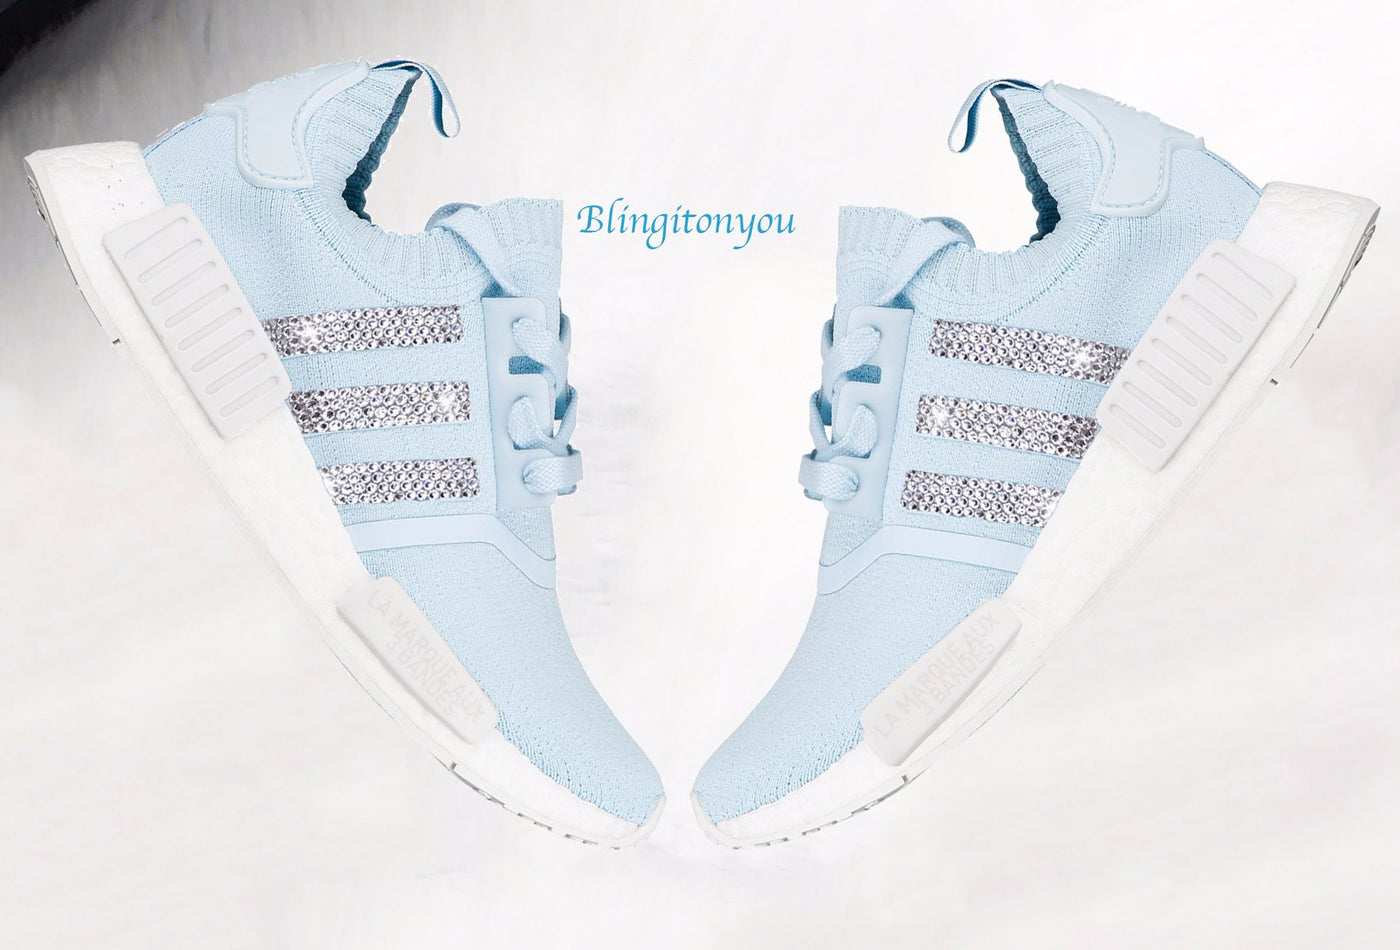 d7c76991c Swarovski Adidas Originals Women s NMD R1 Primeknit Shoes Custom Bling –  Blingitonyou